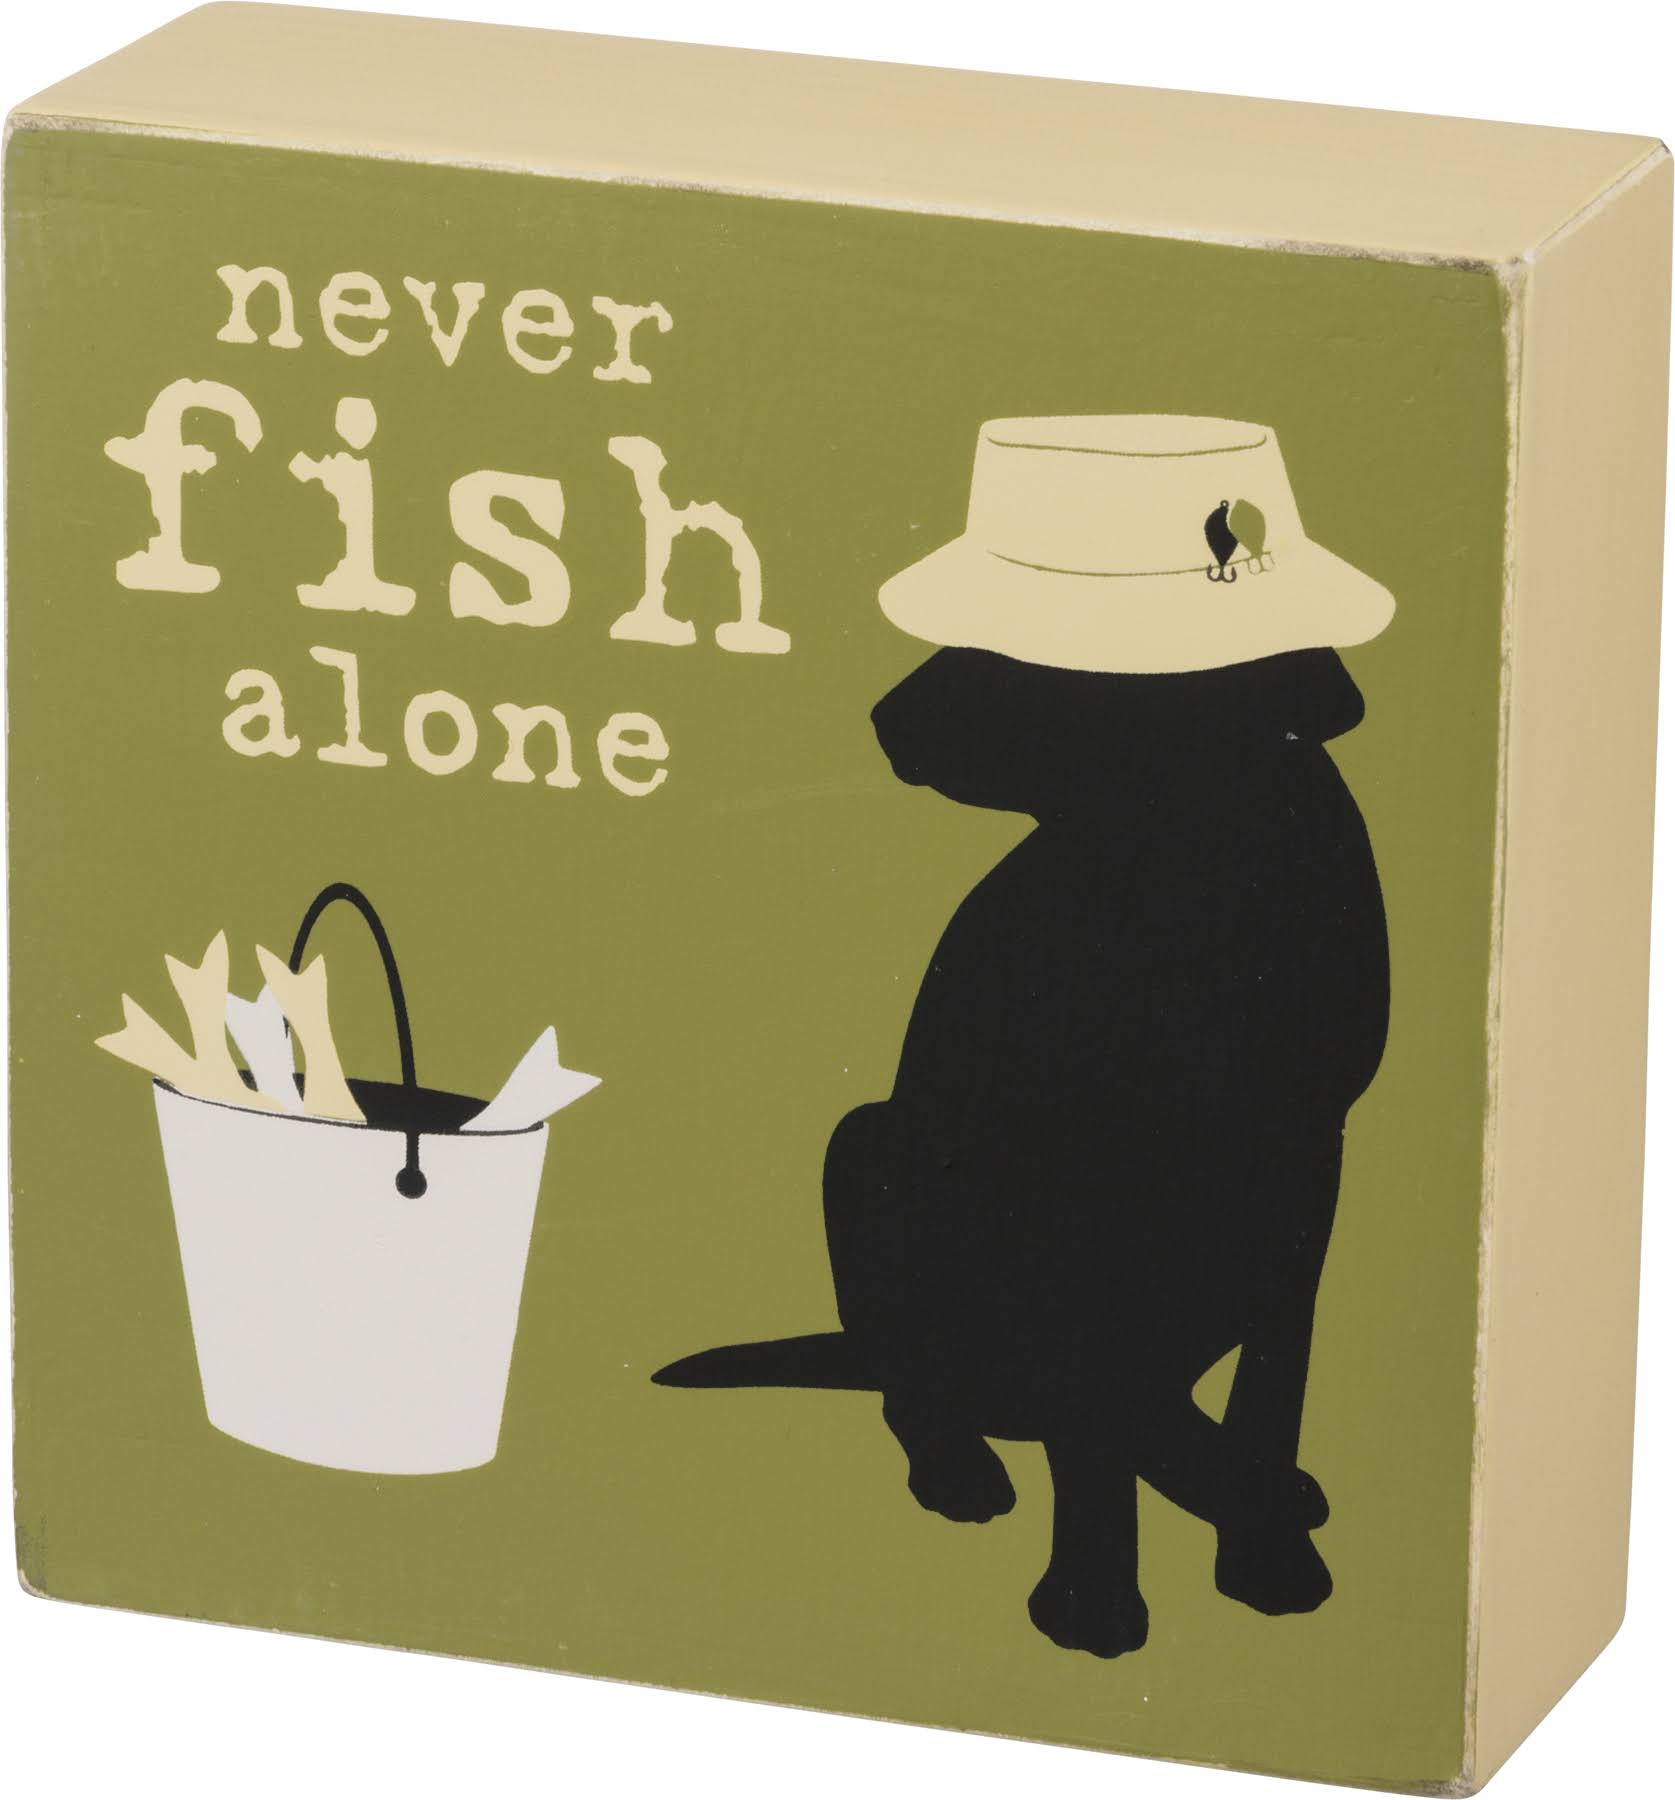 Primitives by Kathy Box Sign - Never Fish Alone